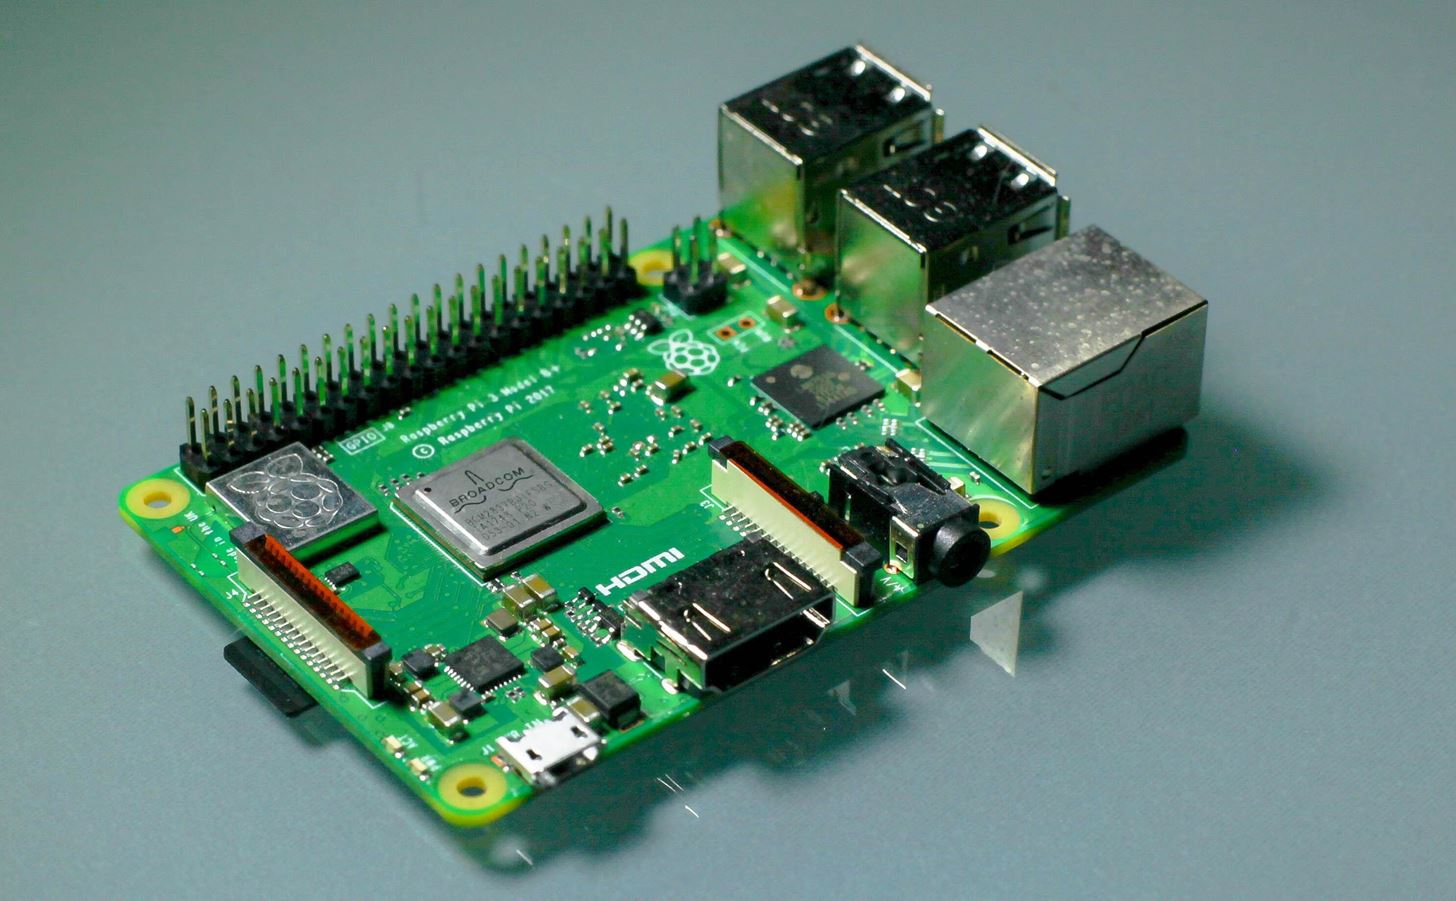 How to Build a Beginner Hacking Kit with the Raspberry Pi 3 Model B+